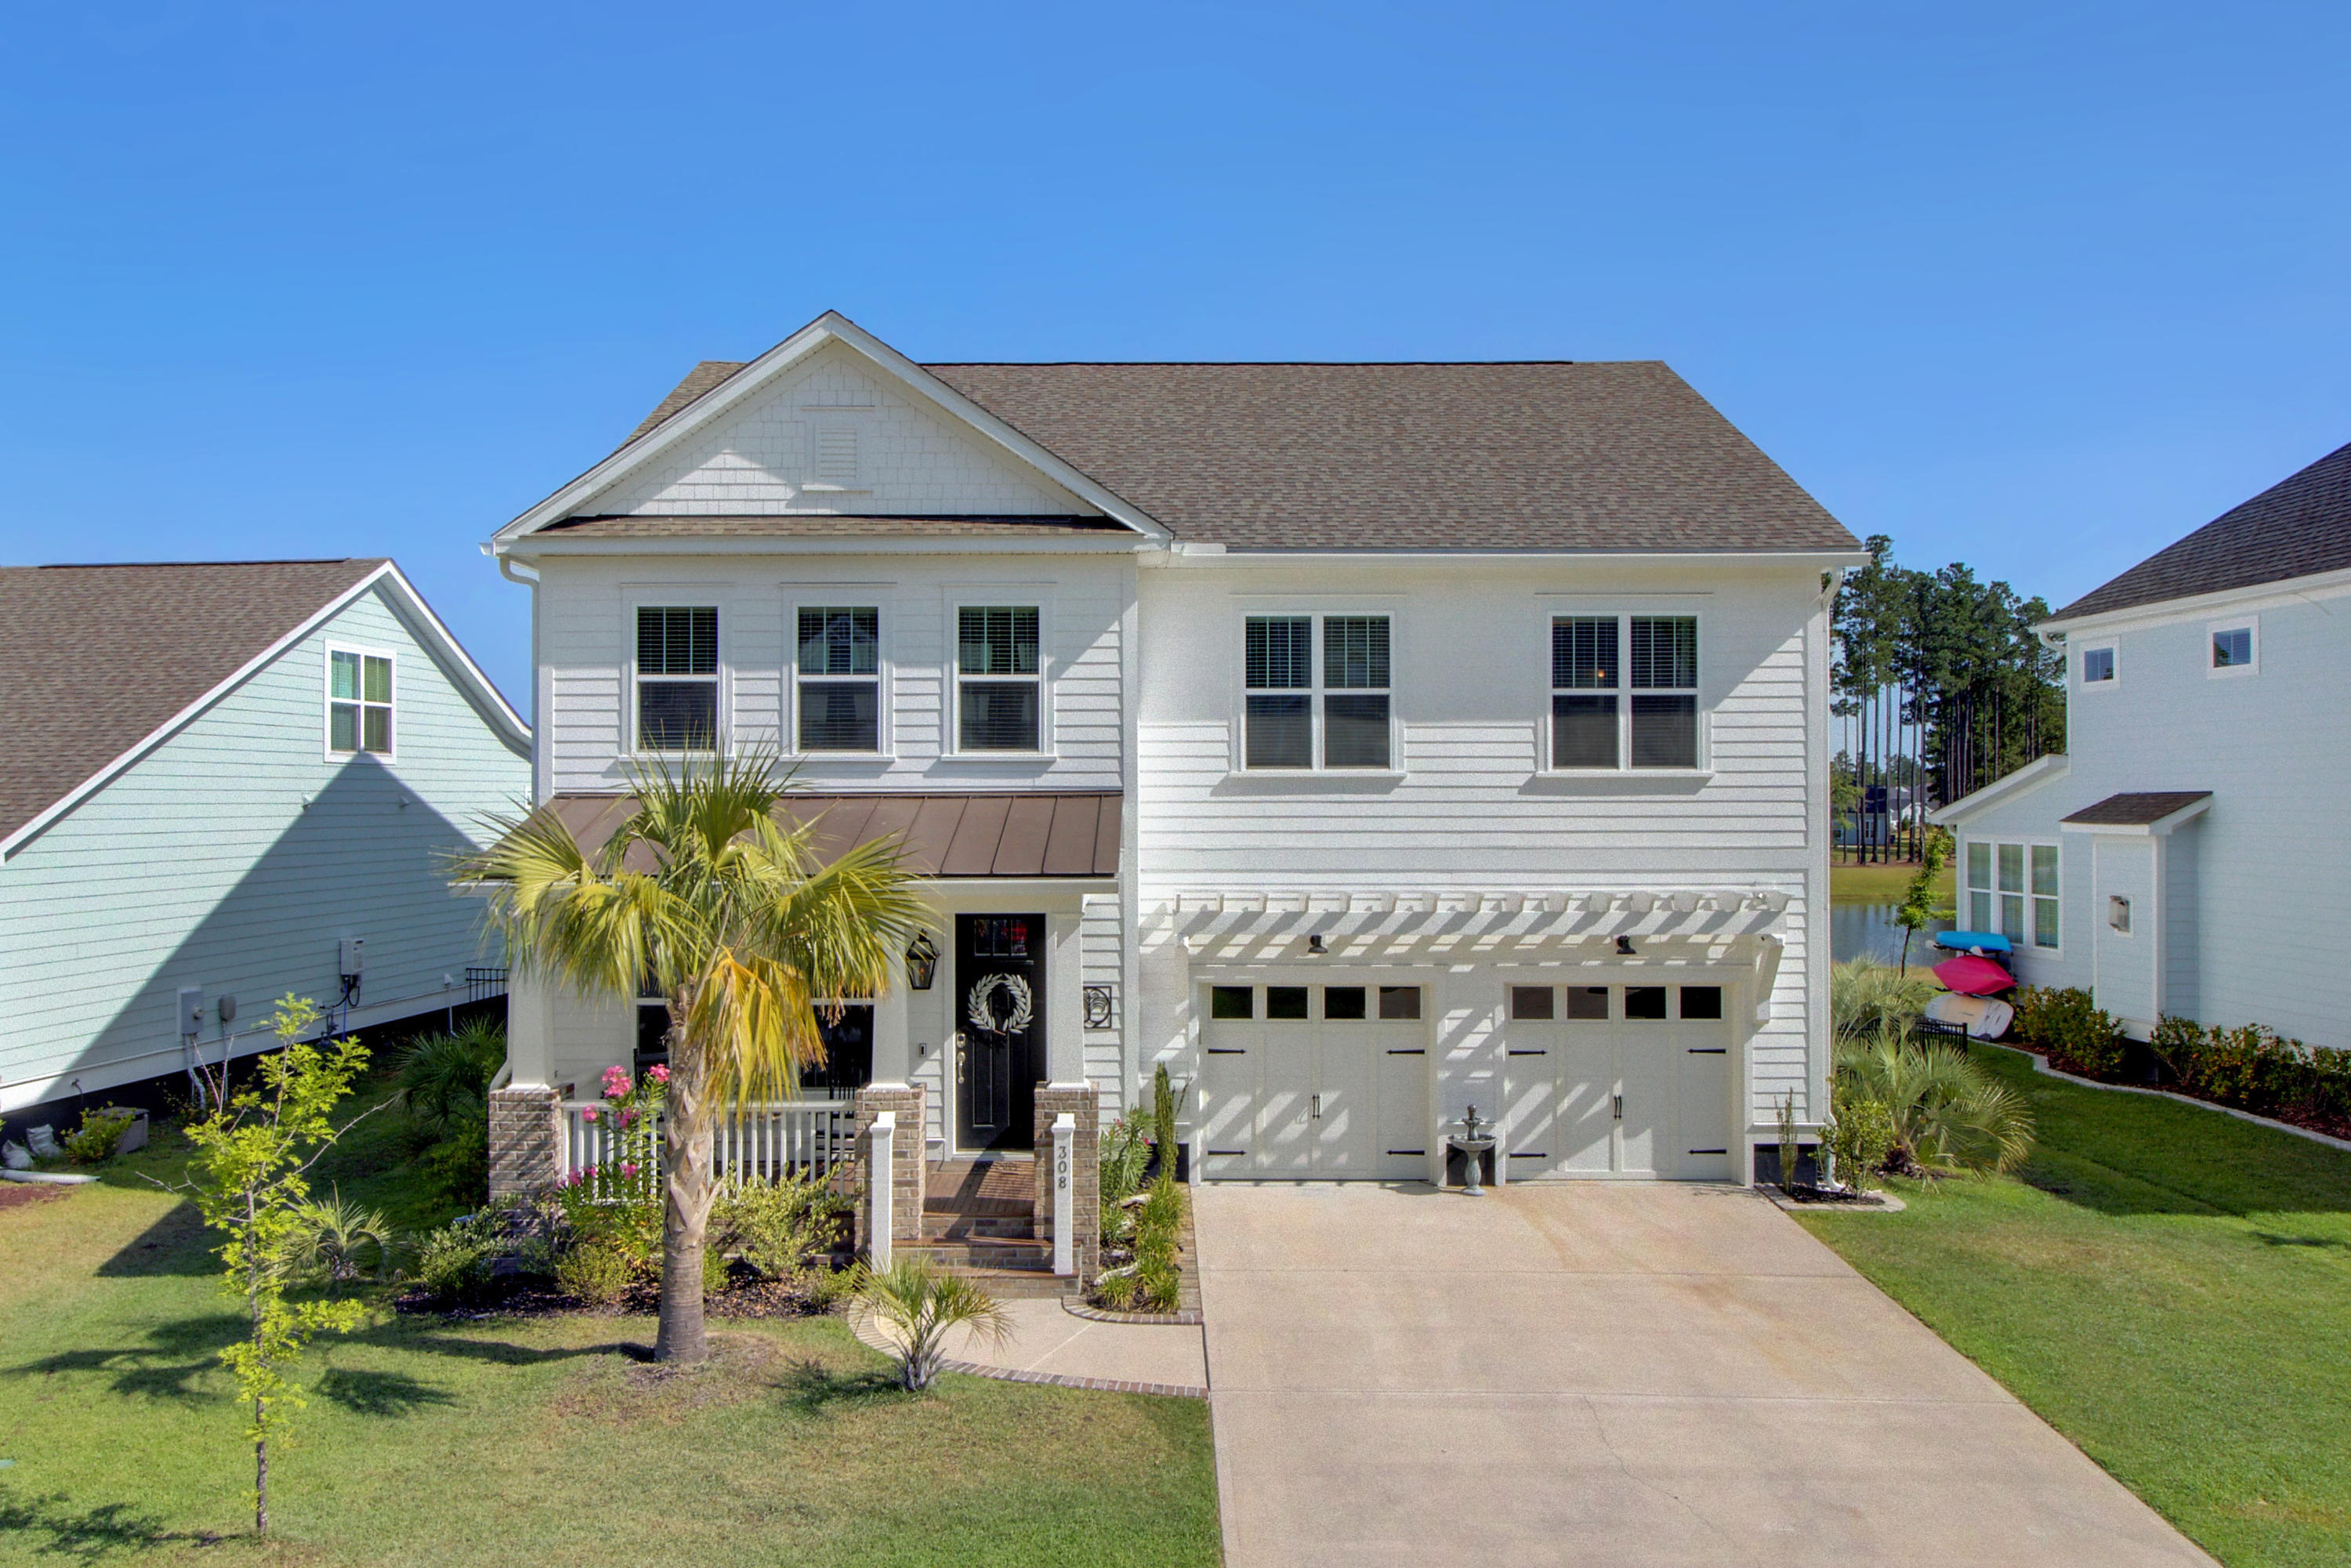 308 Calm Water Way Summerville, SC 29486